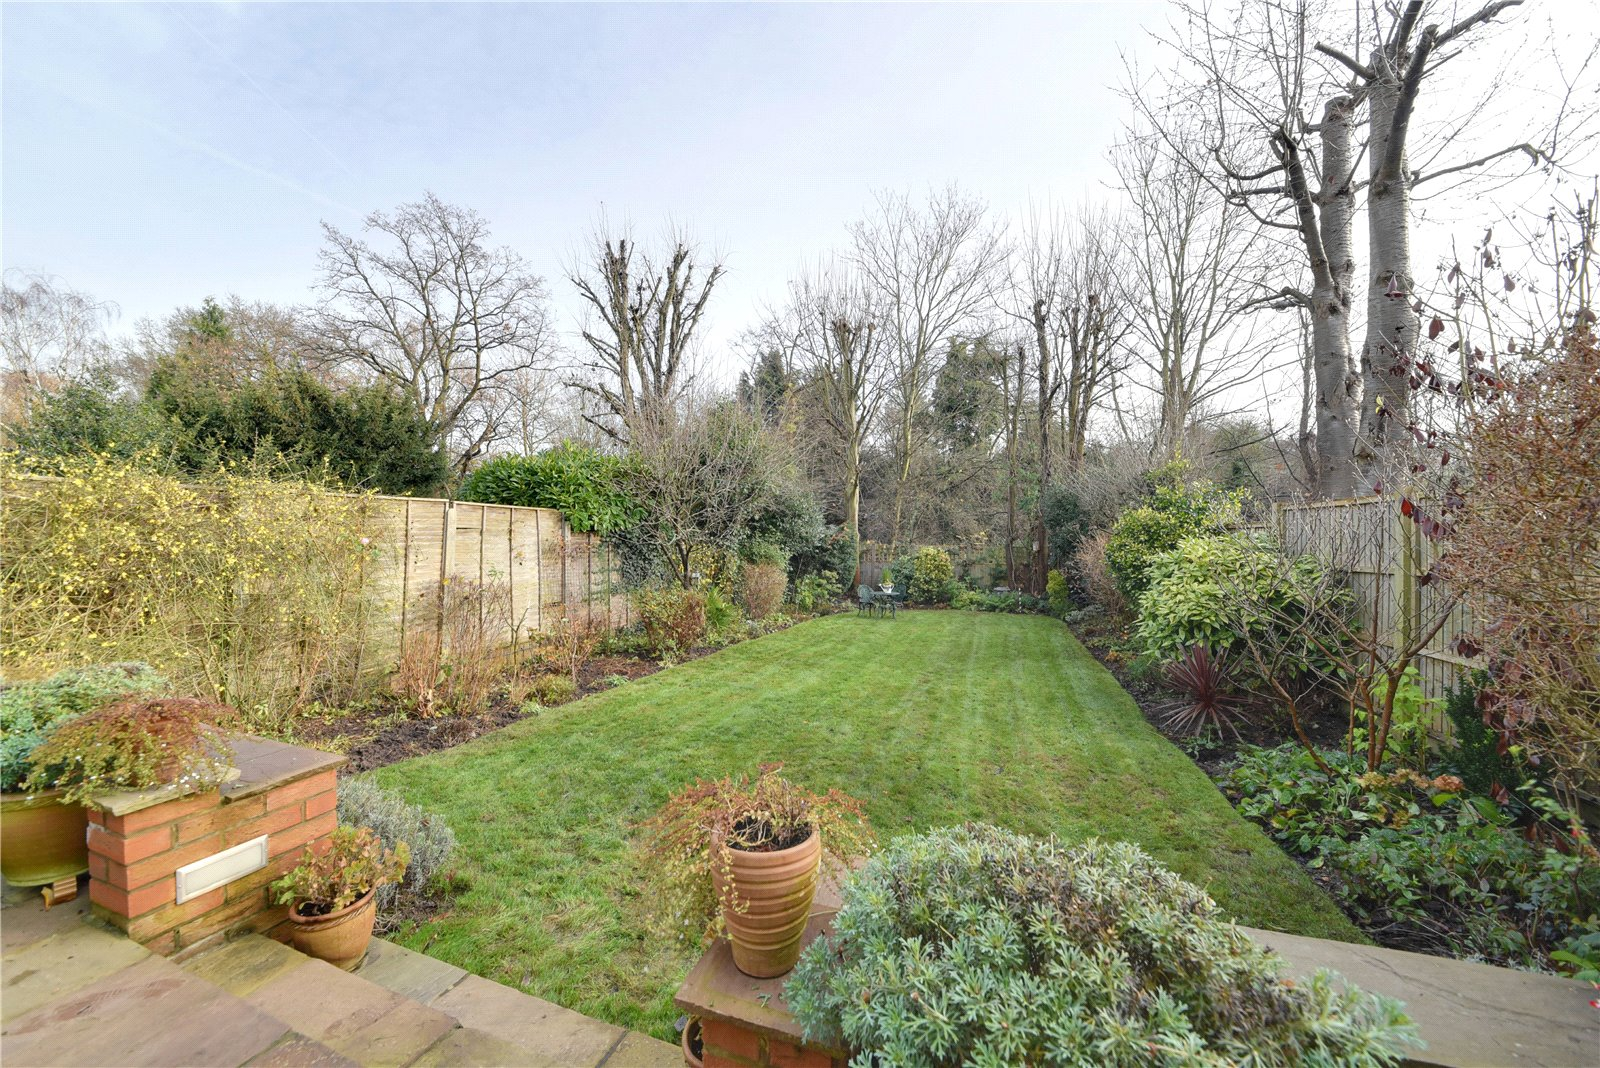 4 bed house for sale in Hendon, NW4 1LJ 6